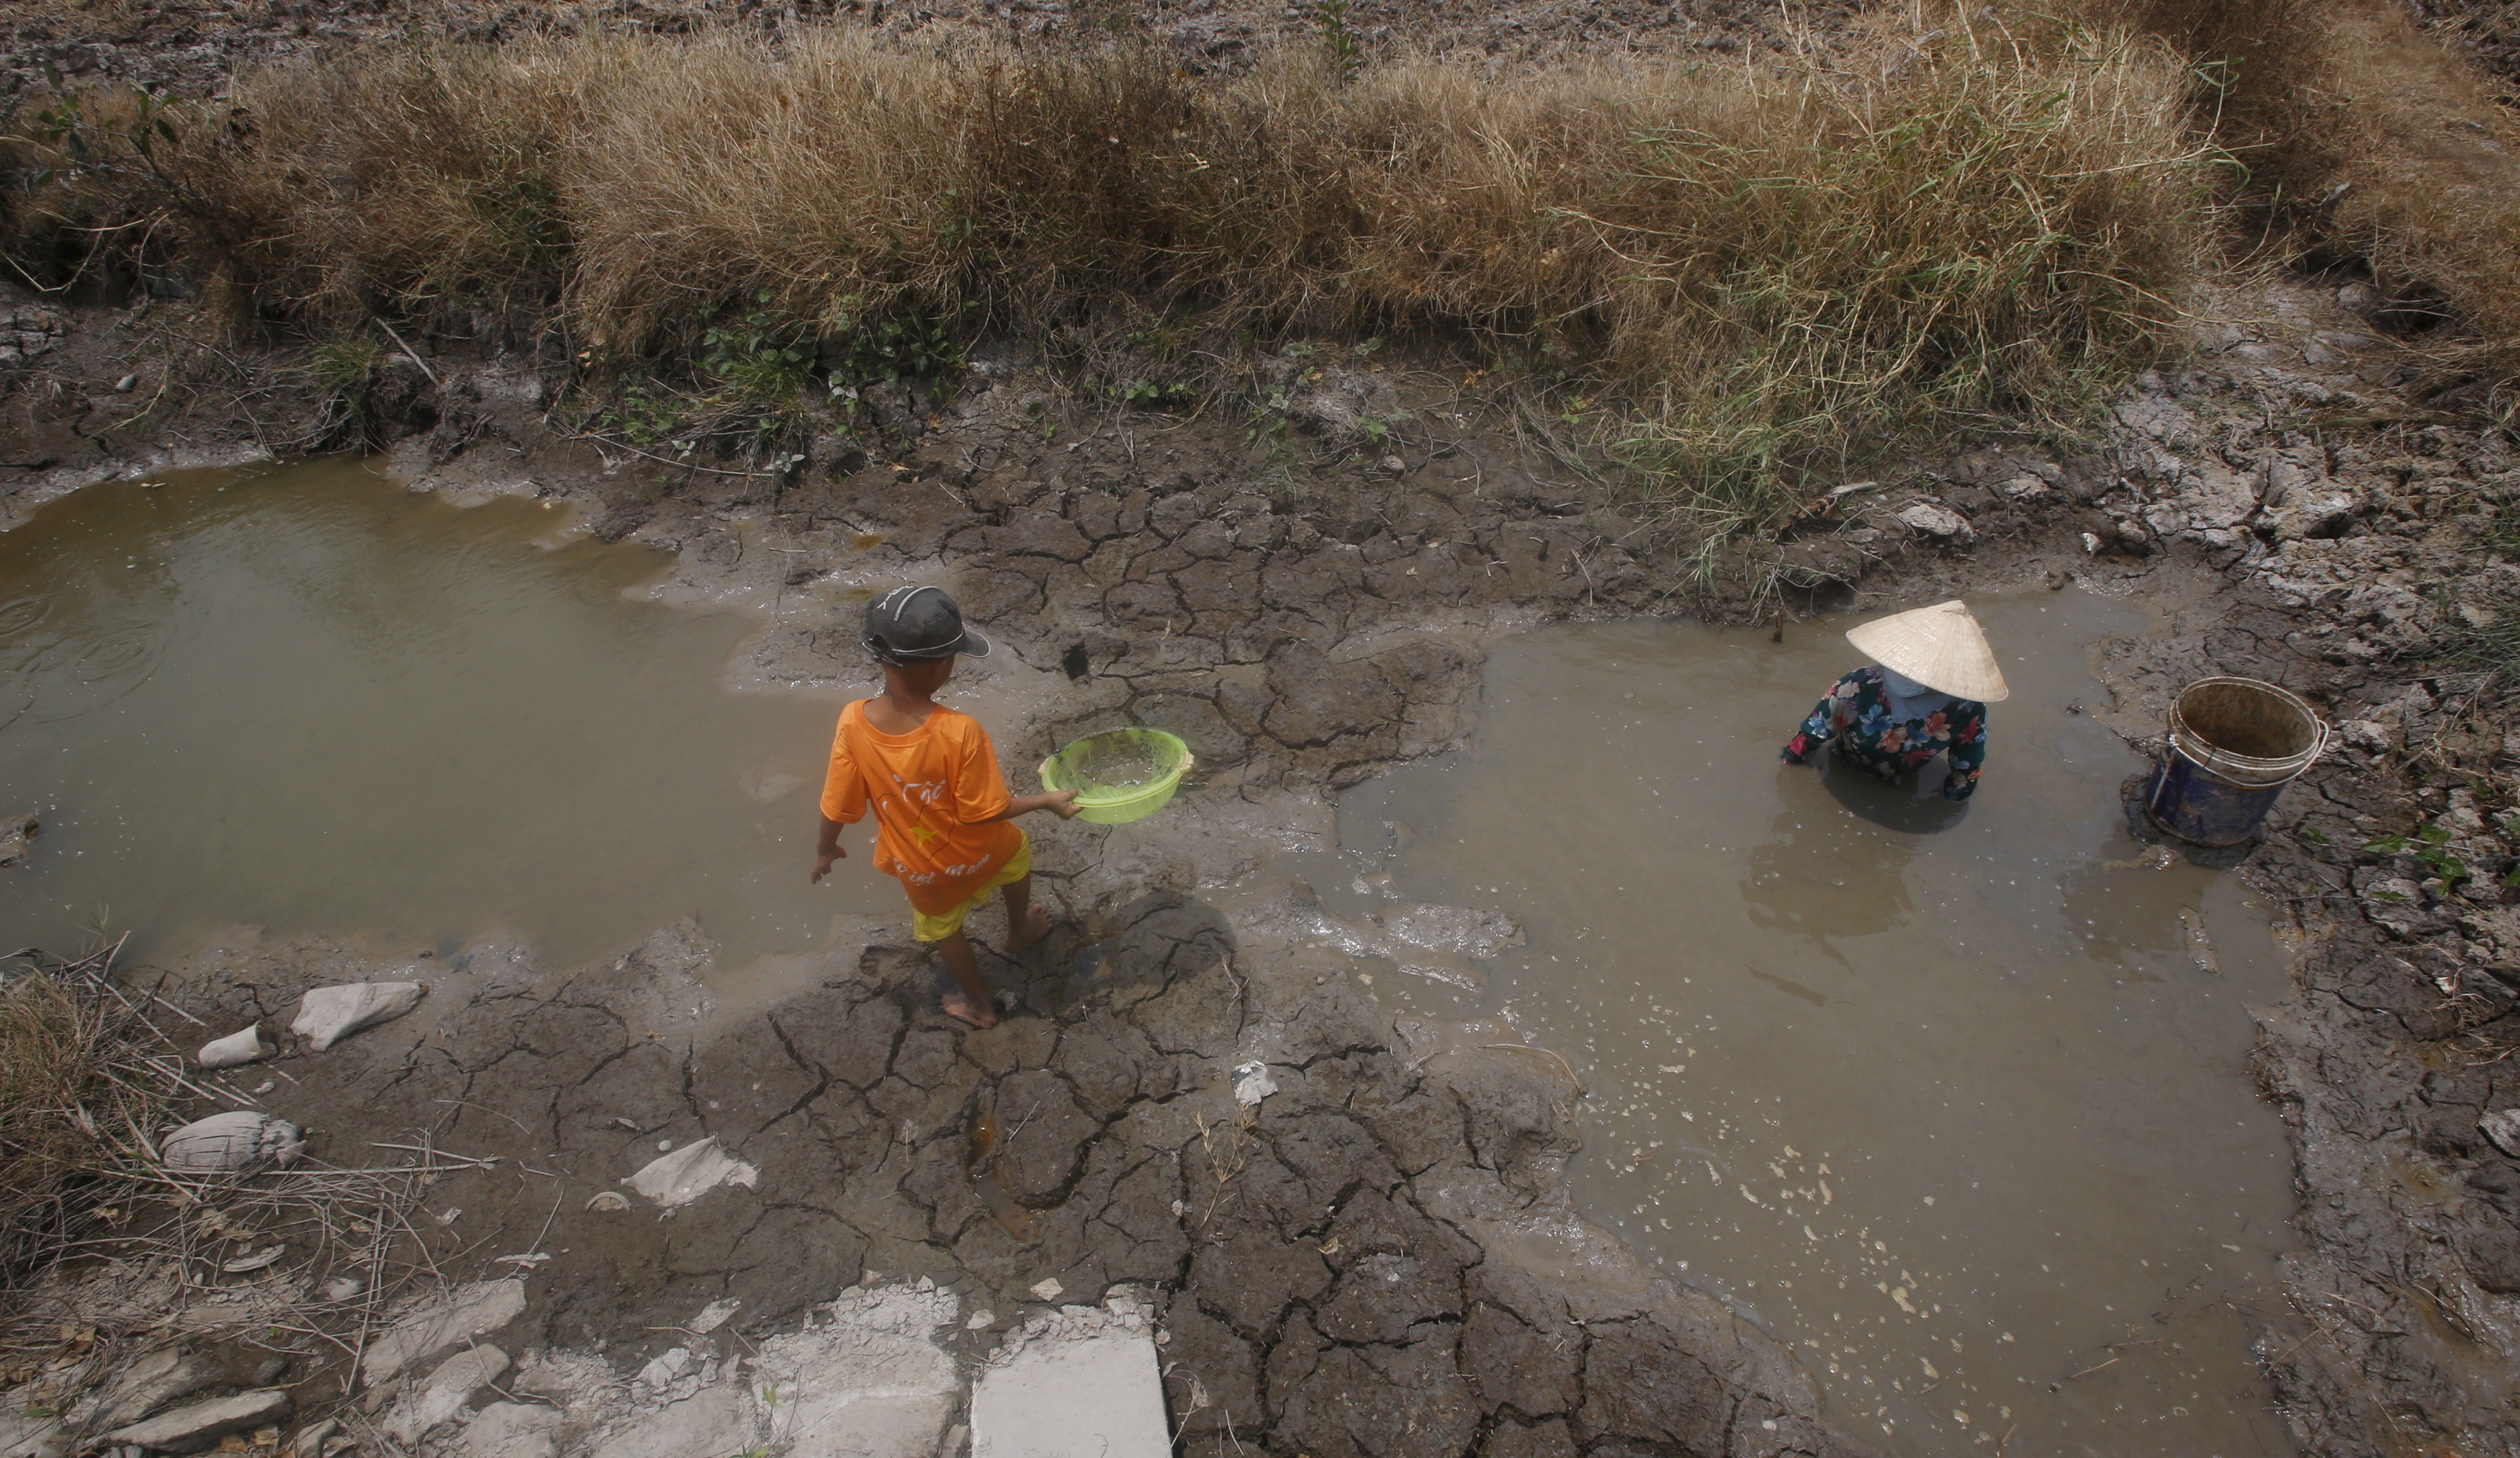 A woman and her son search for fish in the pools created by a drought irrigation system in Soc Trang province in the Mekong Delta, Vietnam March 30, 2016.